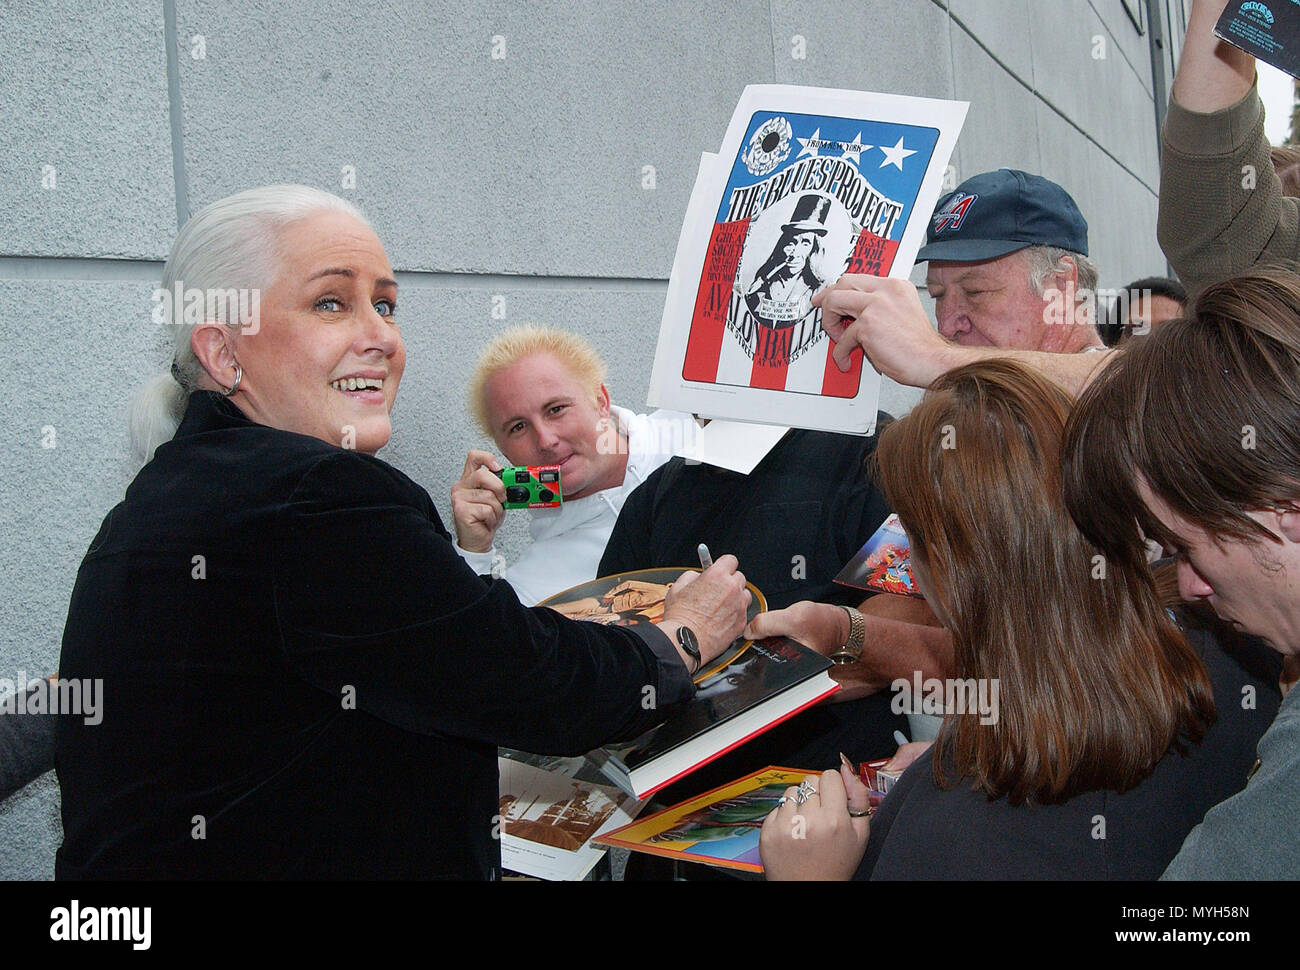 Grace Slick signing authograph after been inducted on the Rock Walk of Fame at the Guitar Center in Los Angeles. October 22, 2002.           -            GraceSlick_RockWalkOfFame01.jpgGraceSlick_RockWalkOfFame01  Event in Hollywood Life - California, Red Carpet Event, USA, Film Industry, Celebrities, Photography, Bestof, Arts Culture and Entertainment, Topix Celebrities fashion, Best of, Hollywood Life, Event in Hollywood Life - California, movie celebrities, TV celebrities, Music celebrities, Topix, Bestof, Arts Culture and Entertainment, Photography,    inquiry tsuni@Gamma-USA.com , Credit  - Stock Image